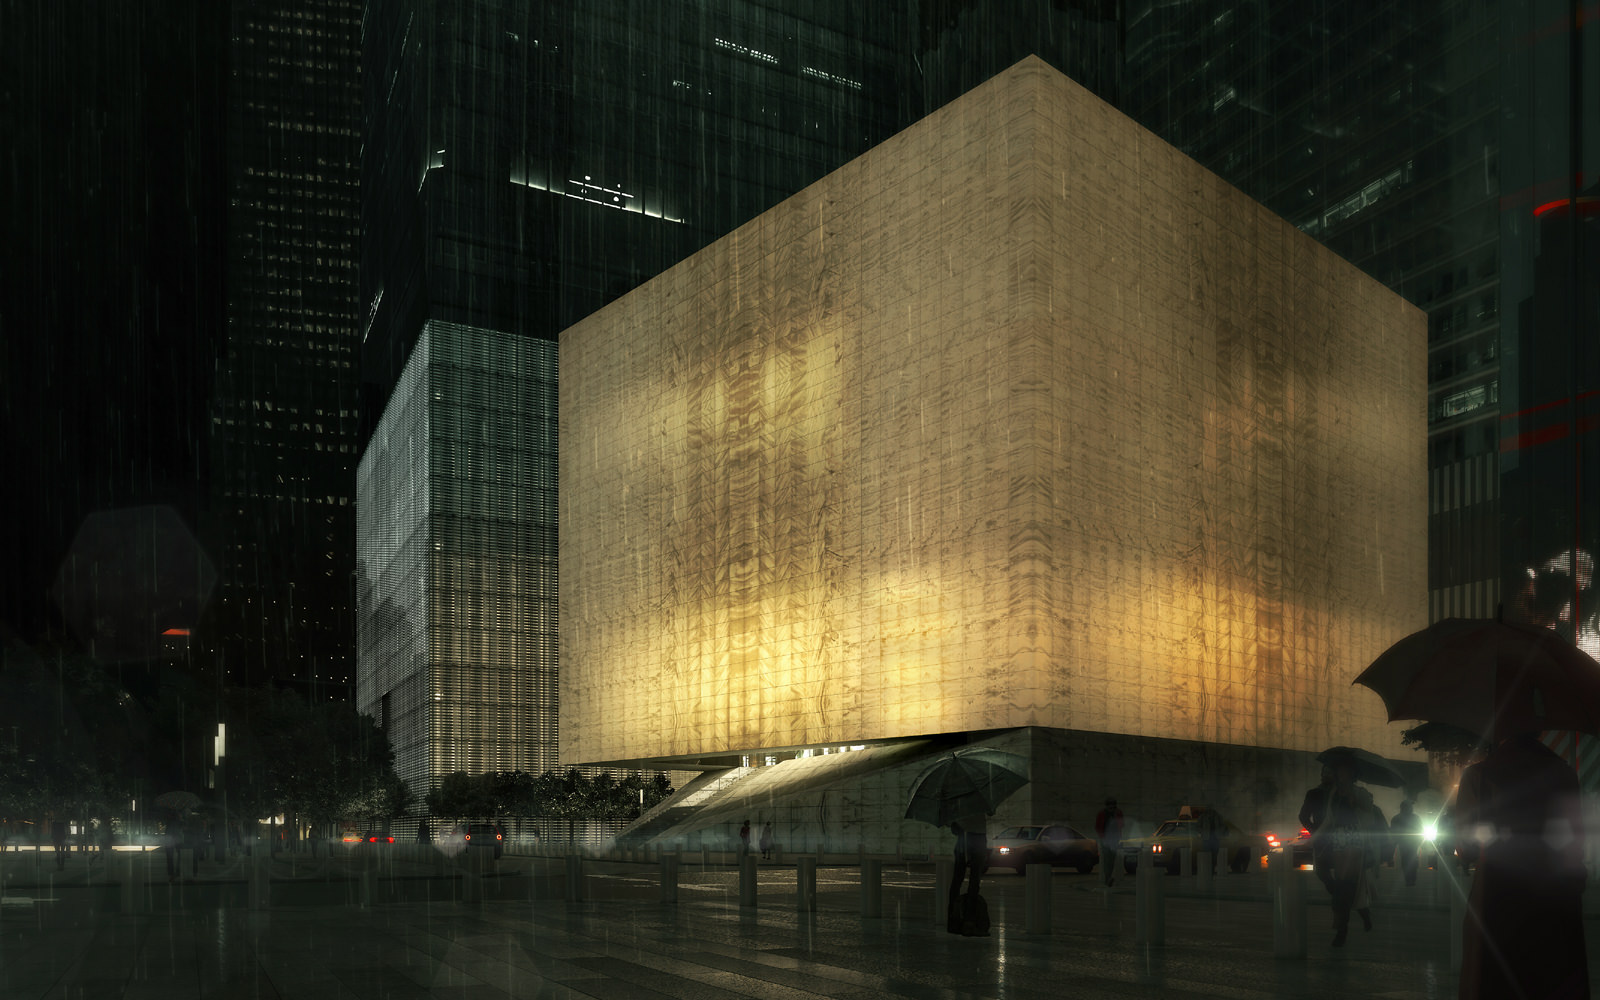 A rendering of the Perelman Center for Performing Arts, which is currently under construction at the World Trade Center.